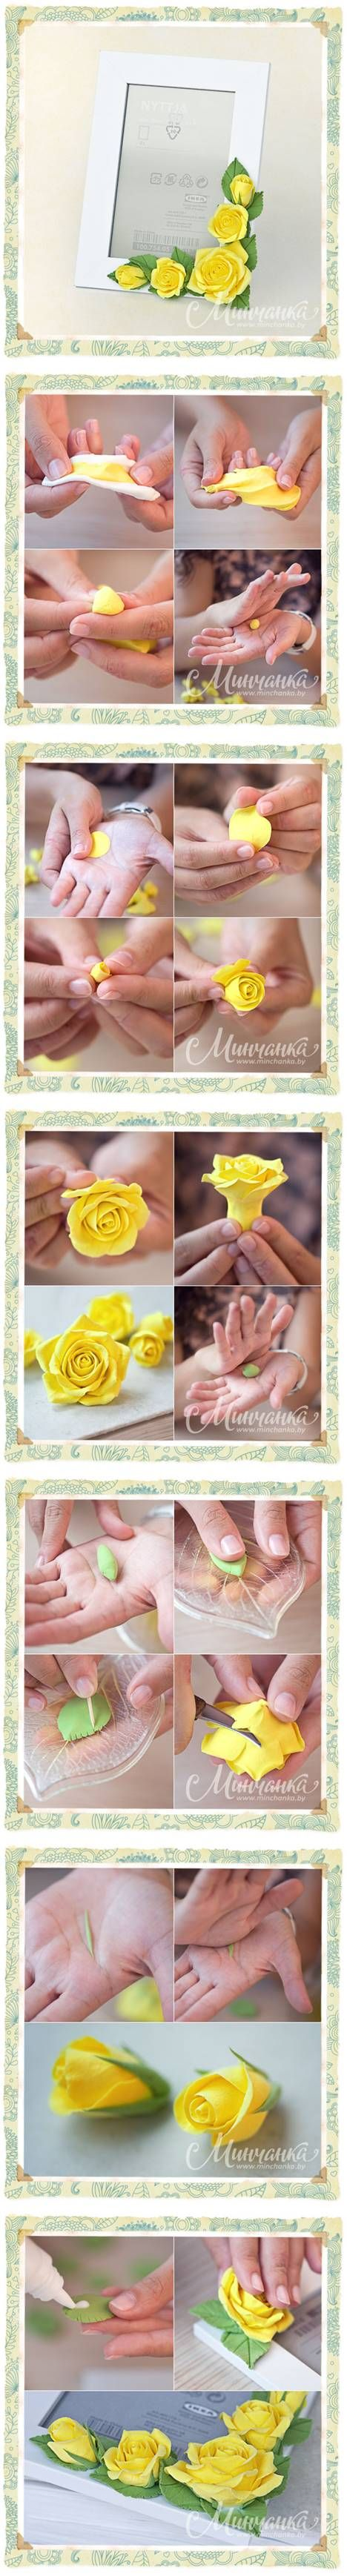 DIY Gyönyörű Clay Yellow Rose DIY Beautiful Clay Sárga rózsa